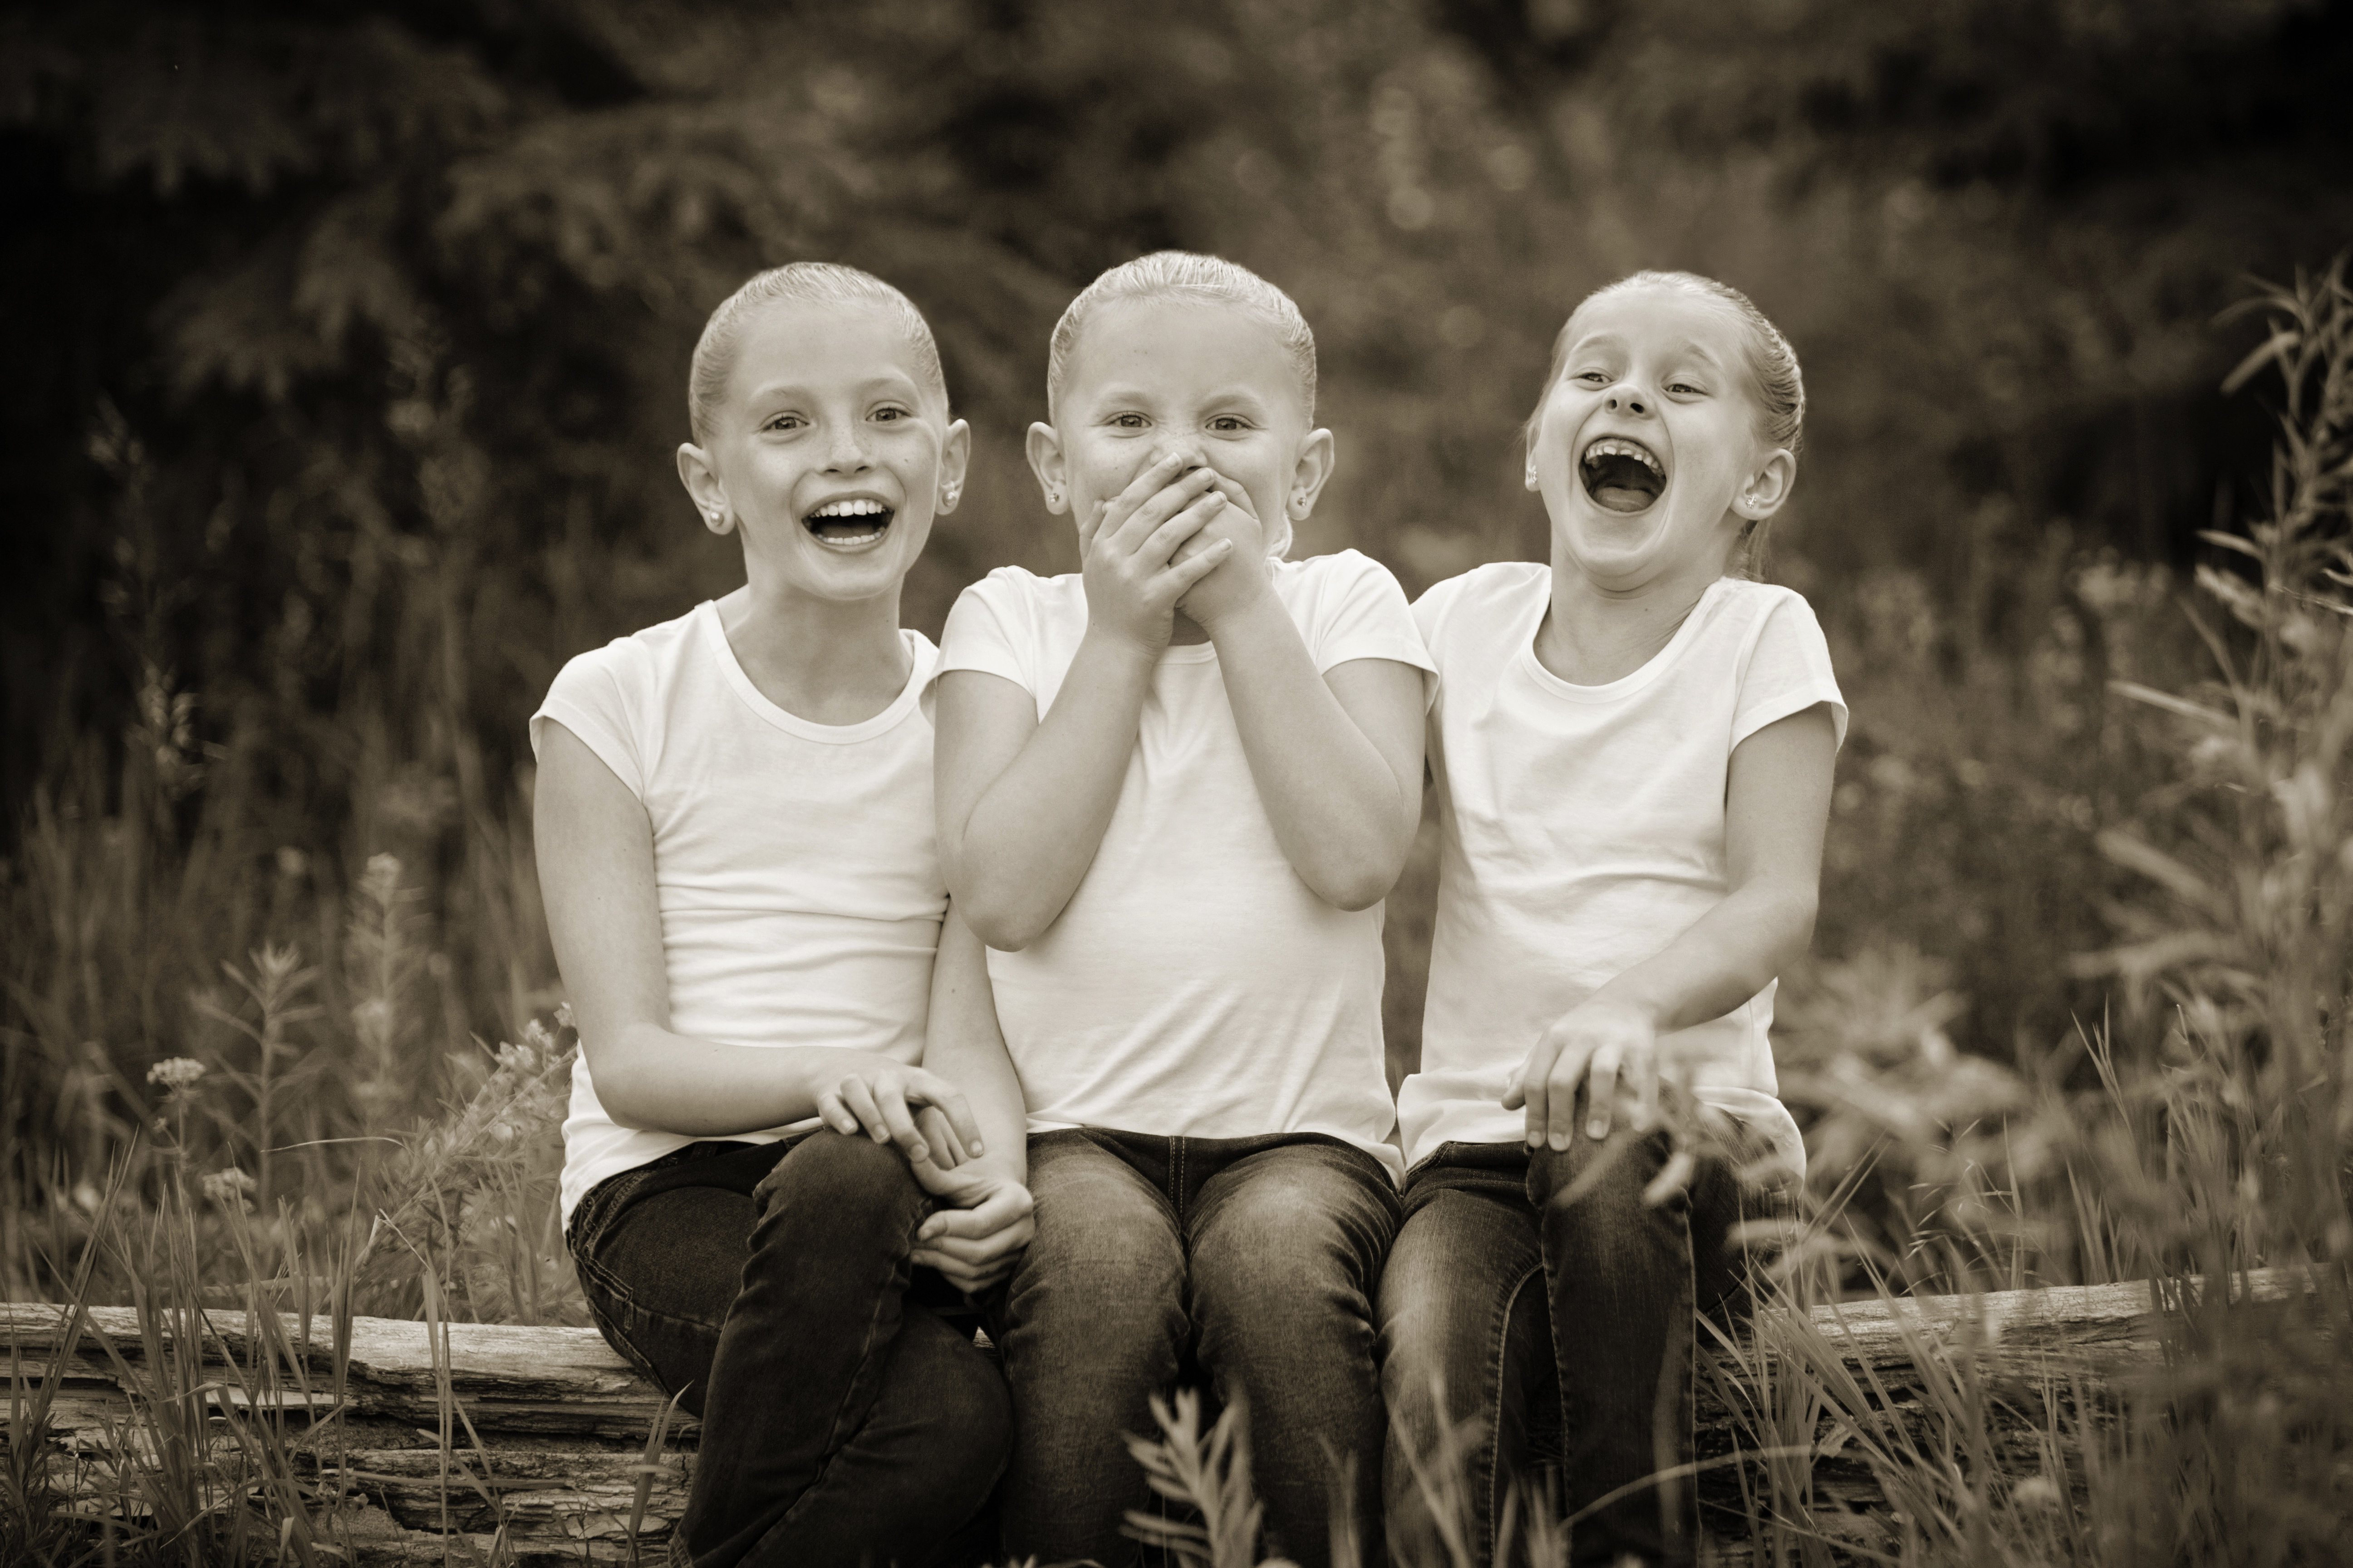 Three girls laughing dressed in white shirts